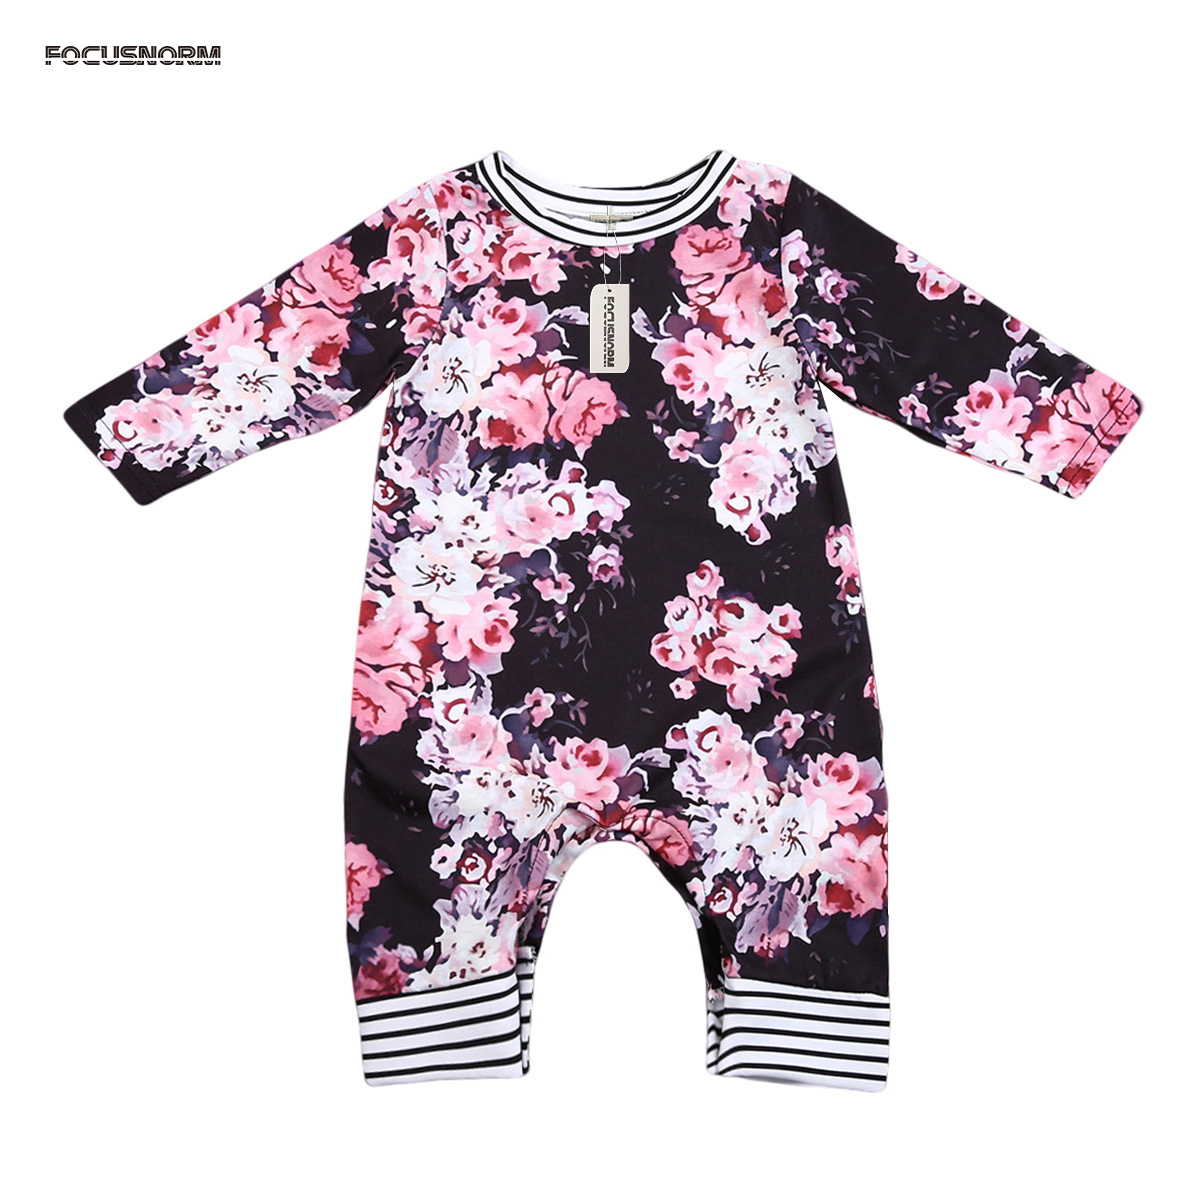 Retro Floral Romper Floral Playsuit Newborn Infant Baby Girl Jumpsuit Outfit